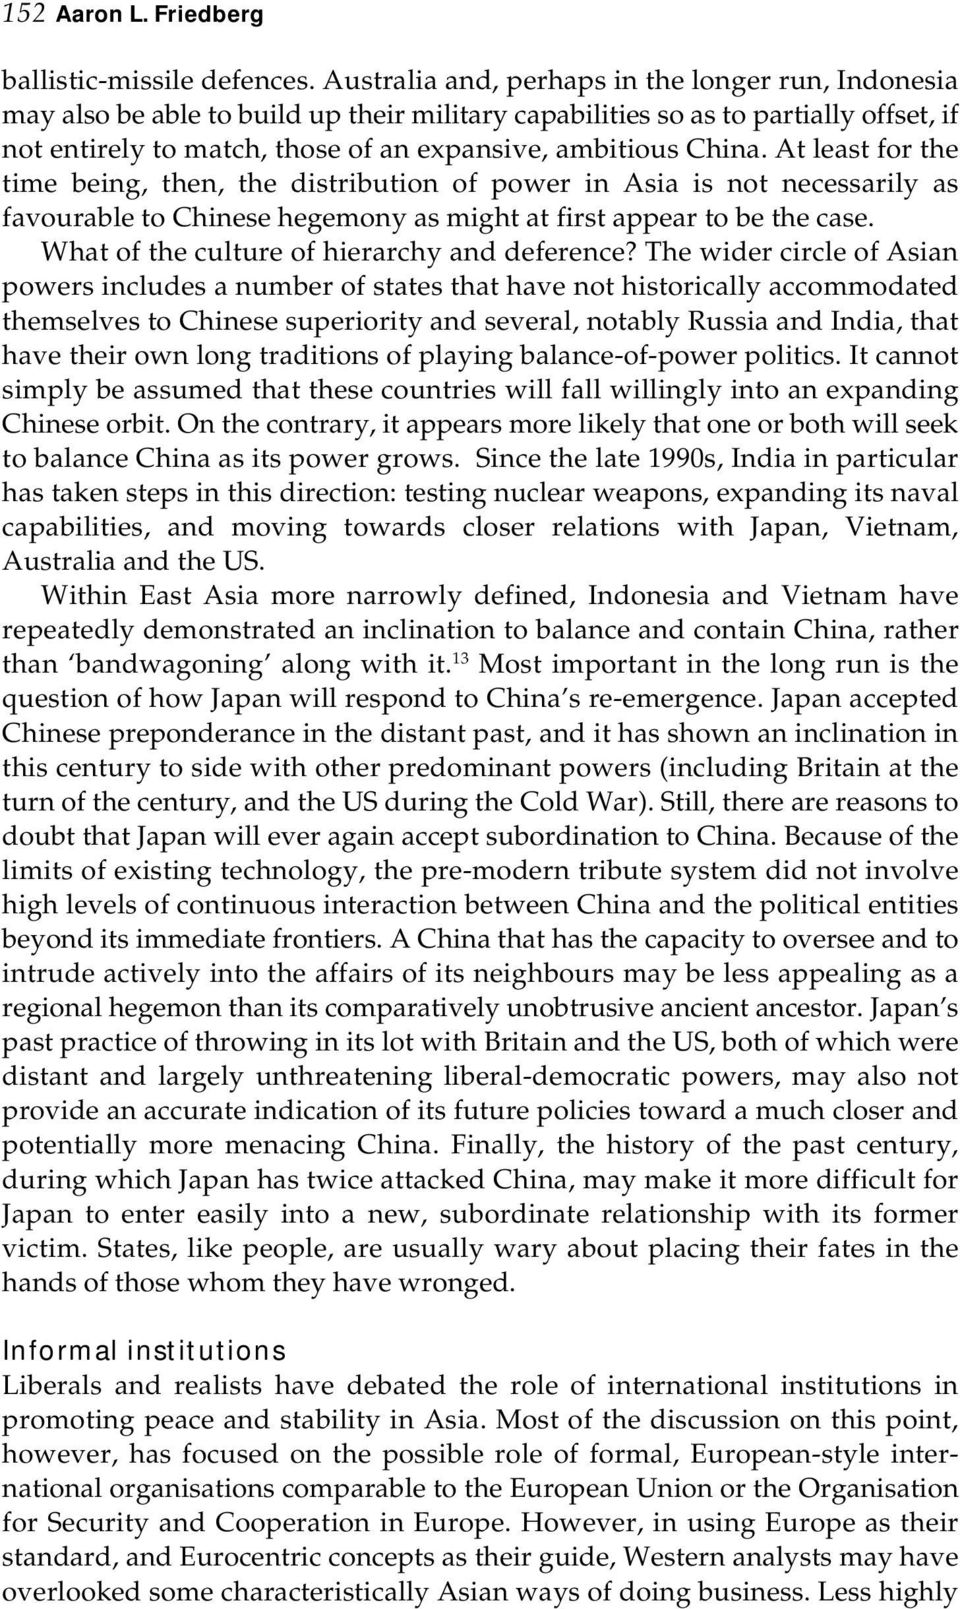 China. At least for the time being, then, the distribution of power in Asia is not necessarily as favourable to Chinese hegemony as might at first appear to be the case.